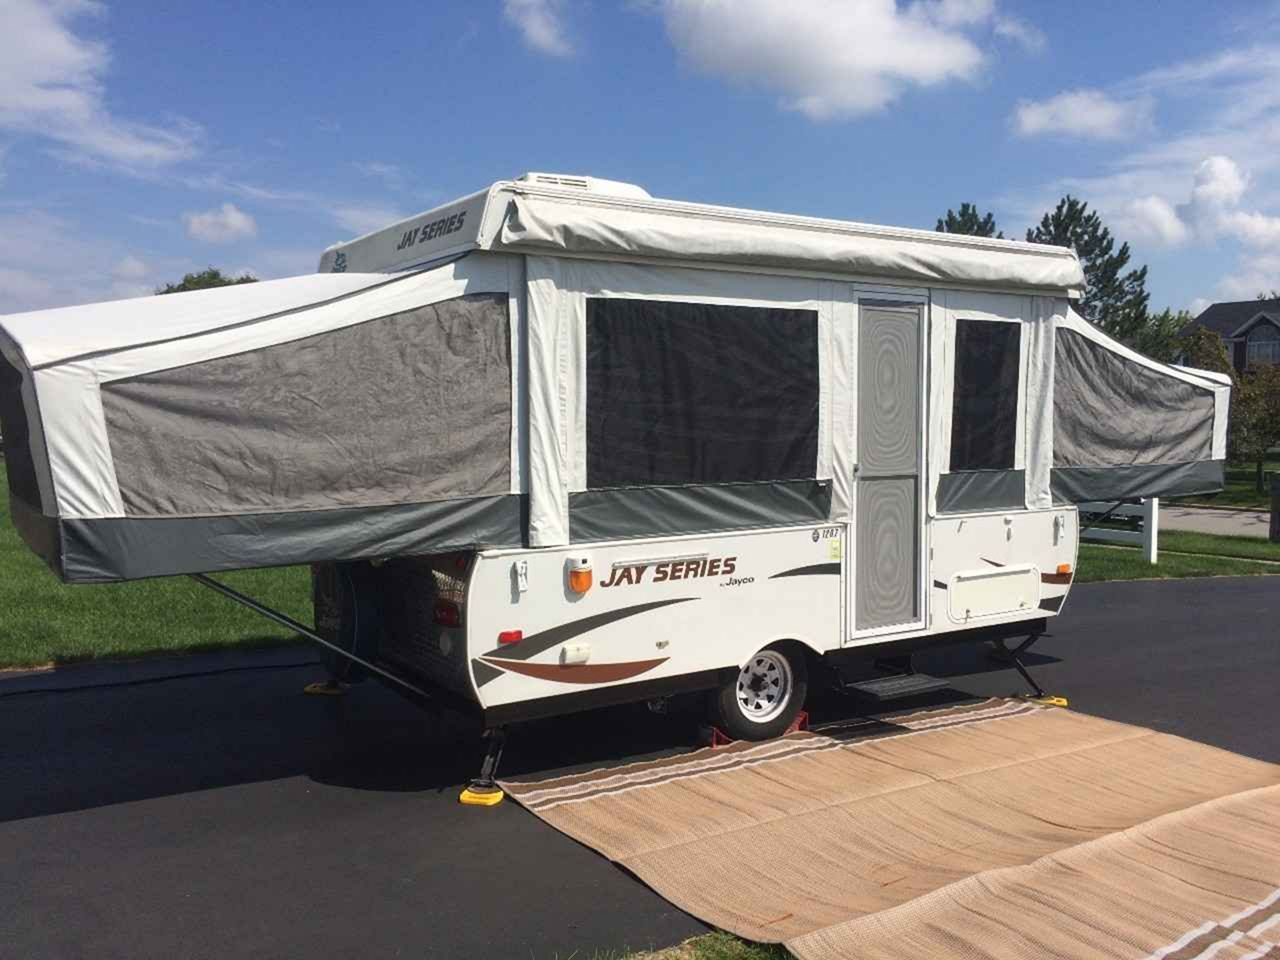 27 Simple And Comfortable Pop Up Camper Ideas For Simple And